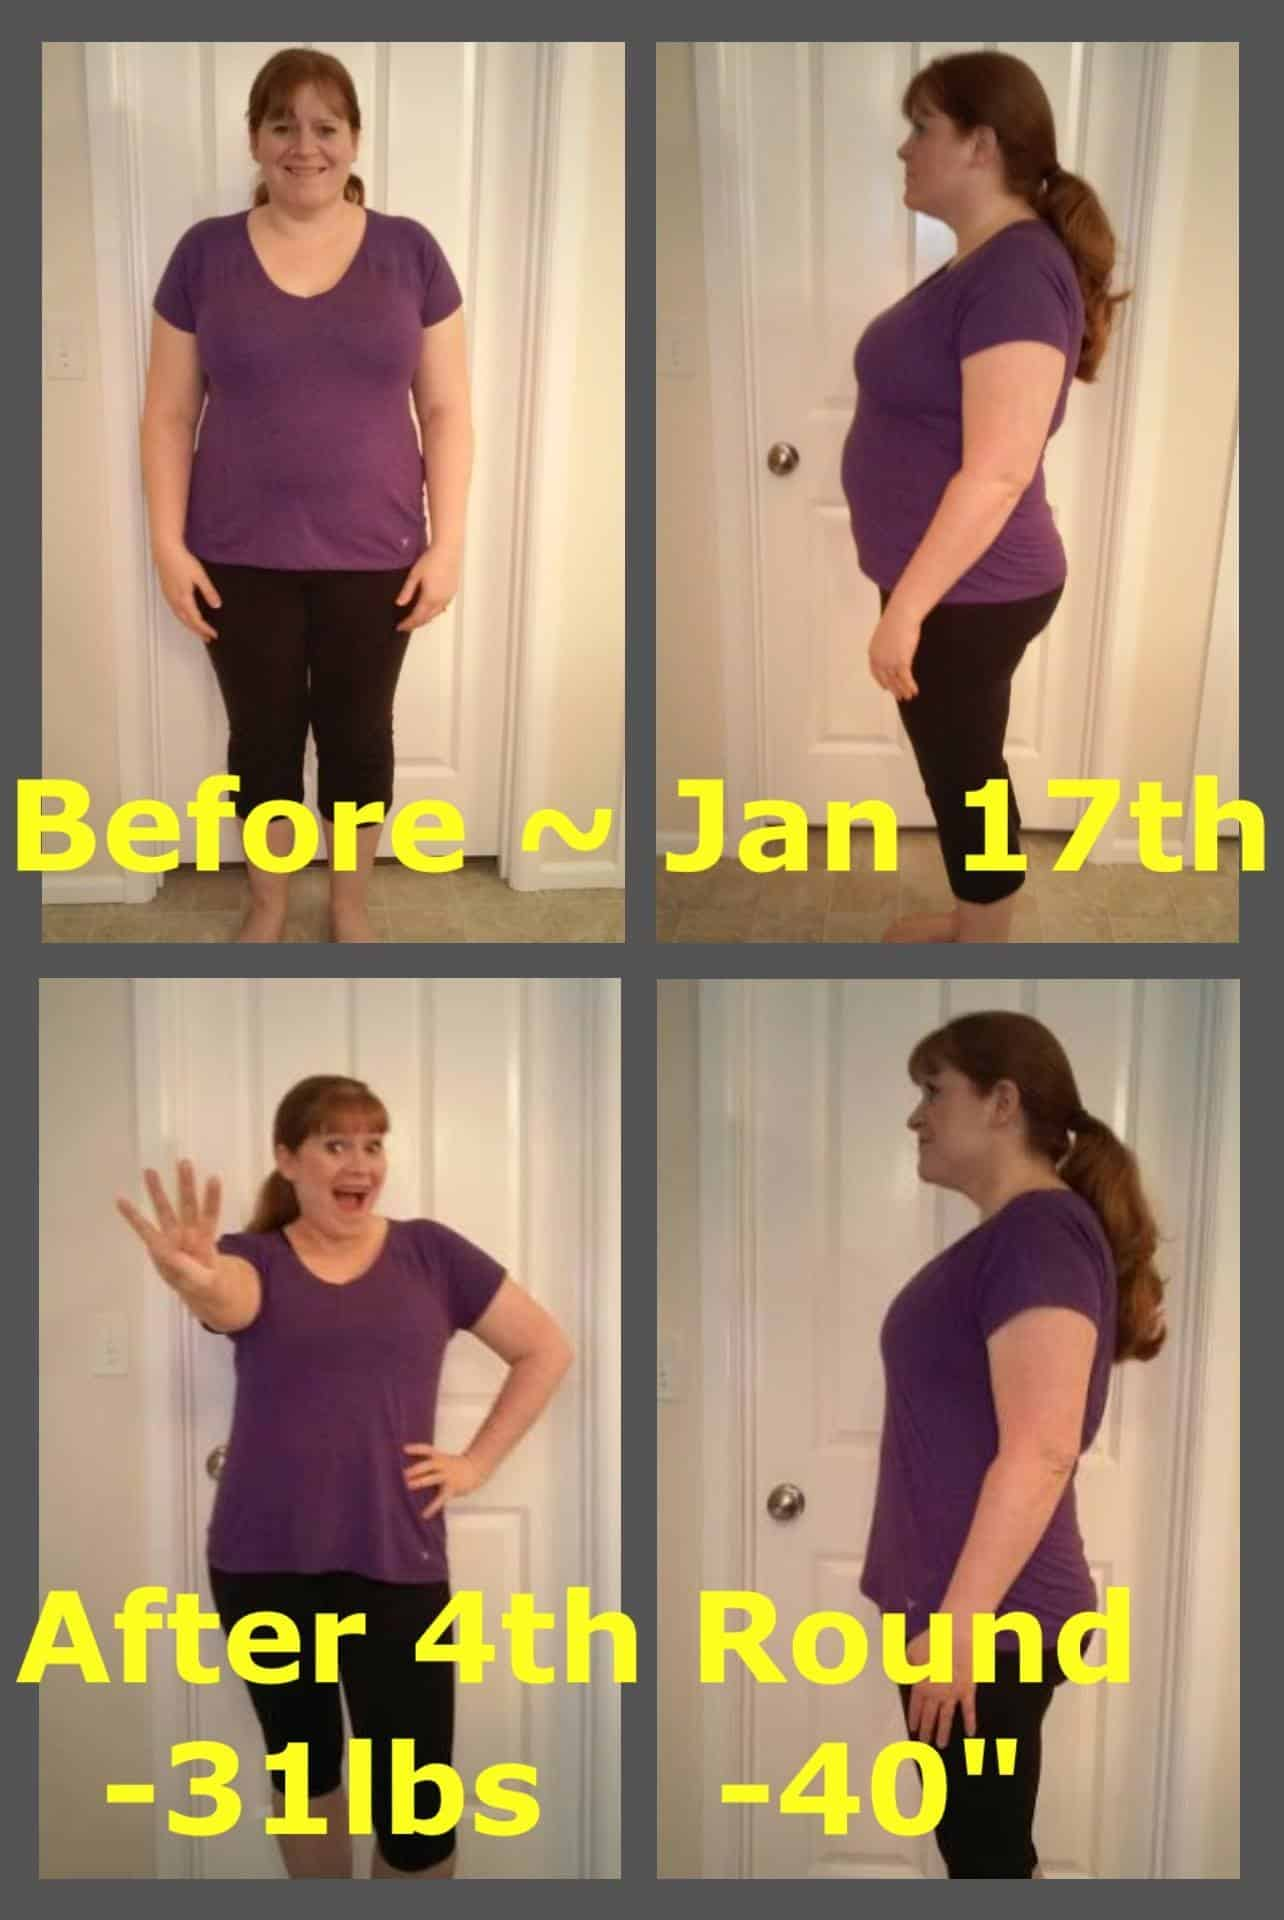 transformation tuesday, jenn a anderson, mom, motivation, life change, lose weight, weight loss.